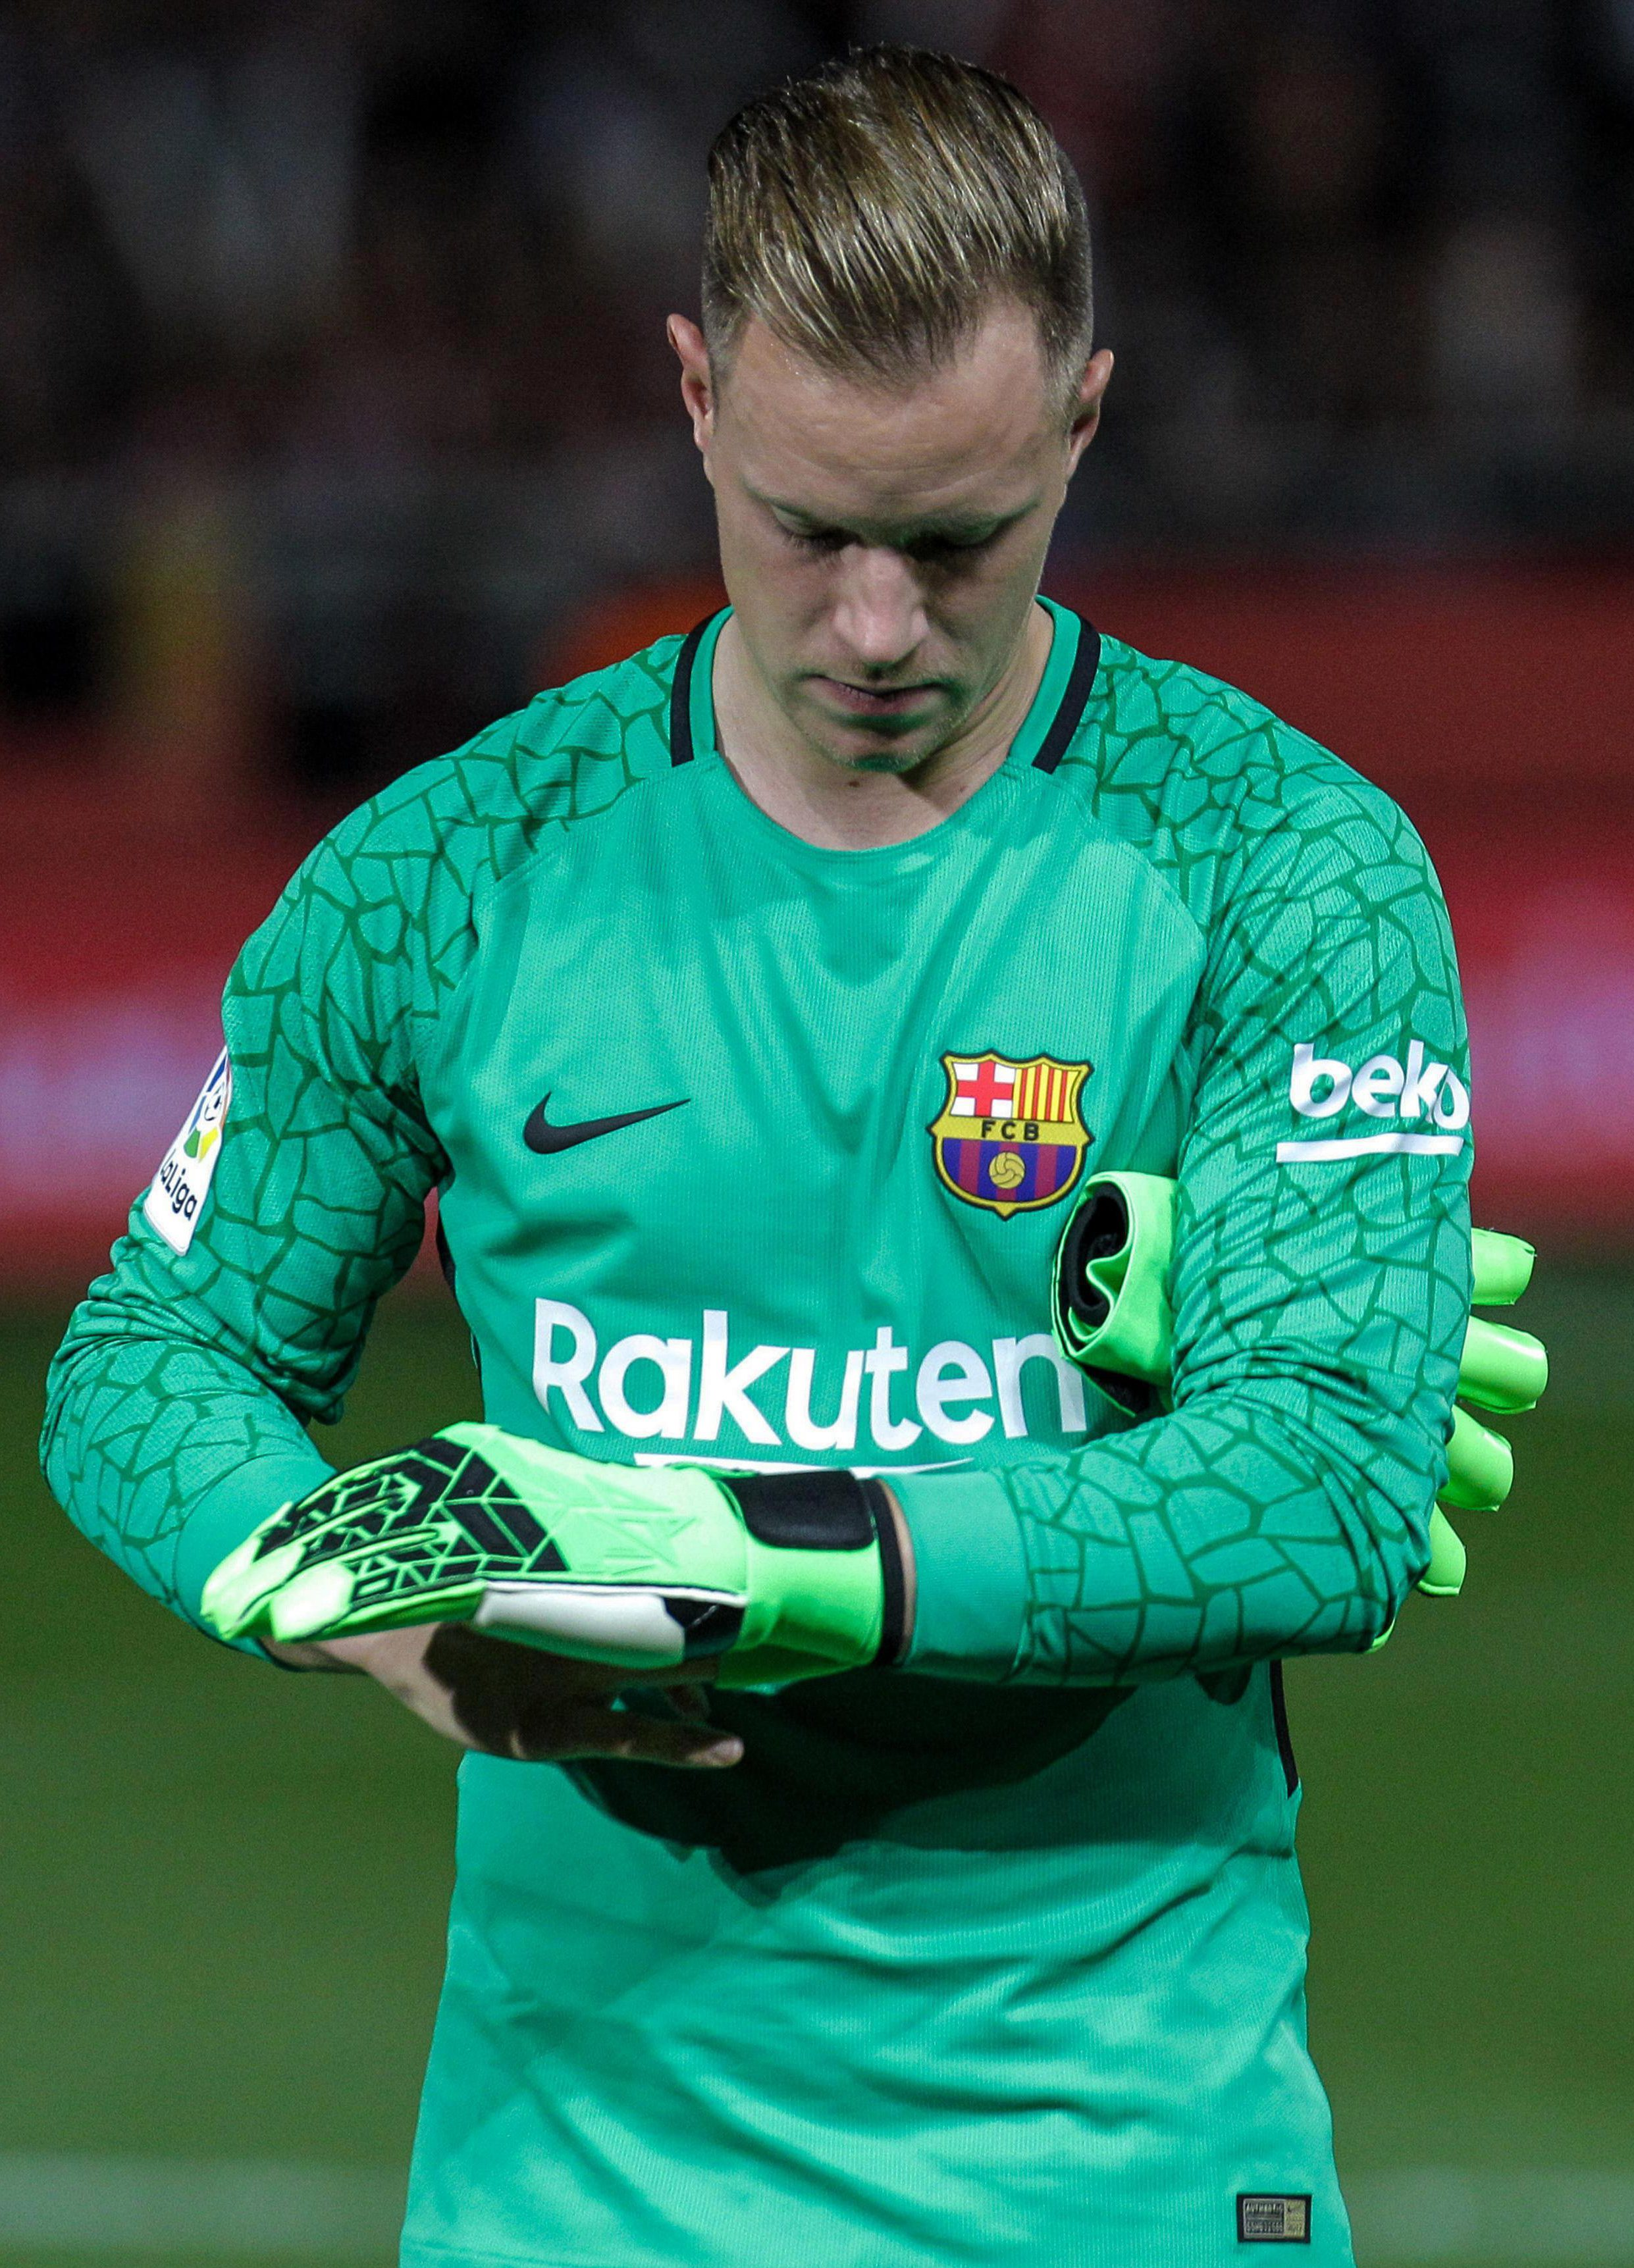 Maffeo's friend believes Ter Stegen > Messi